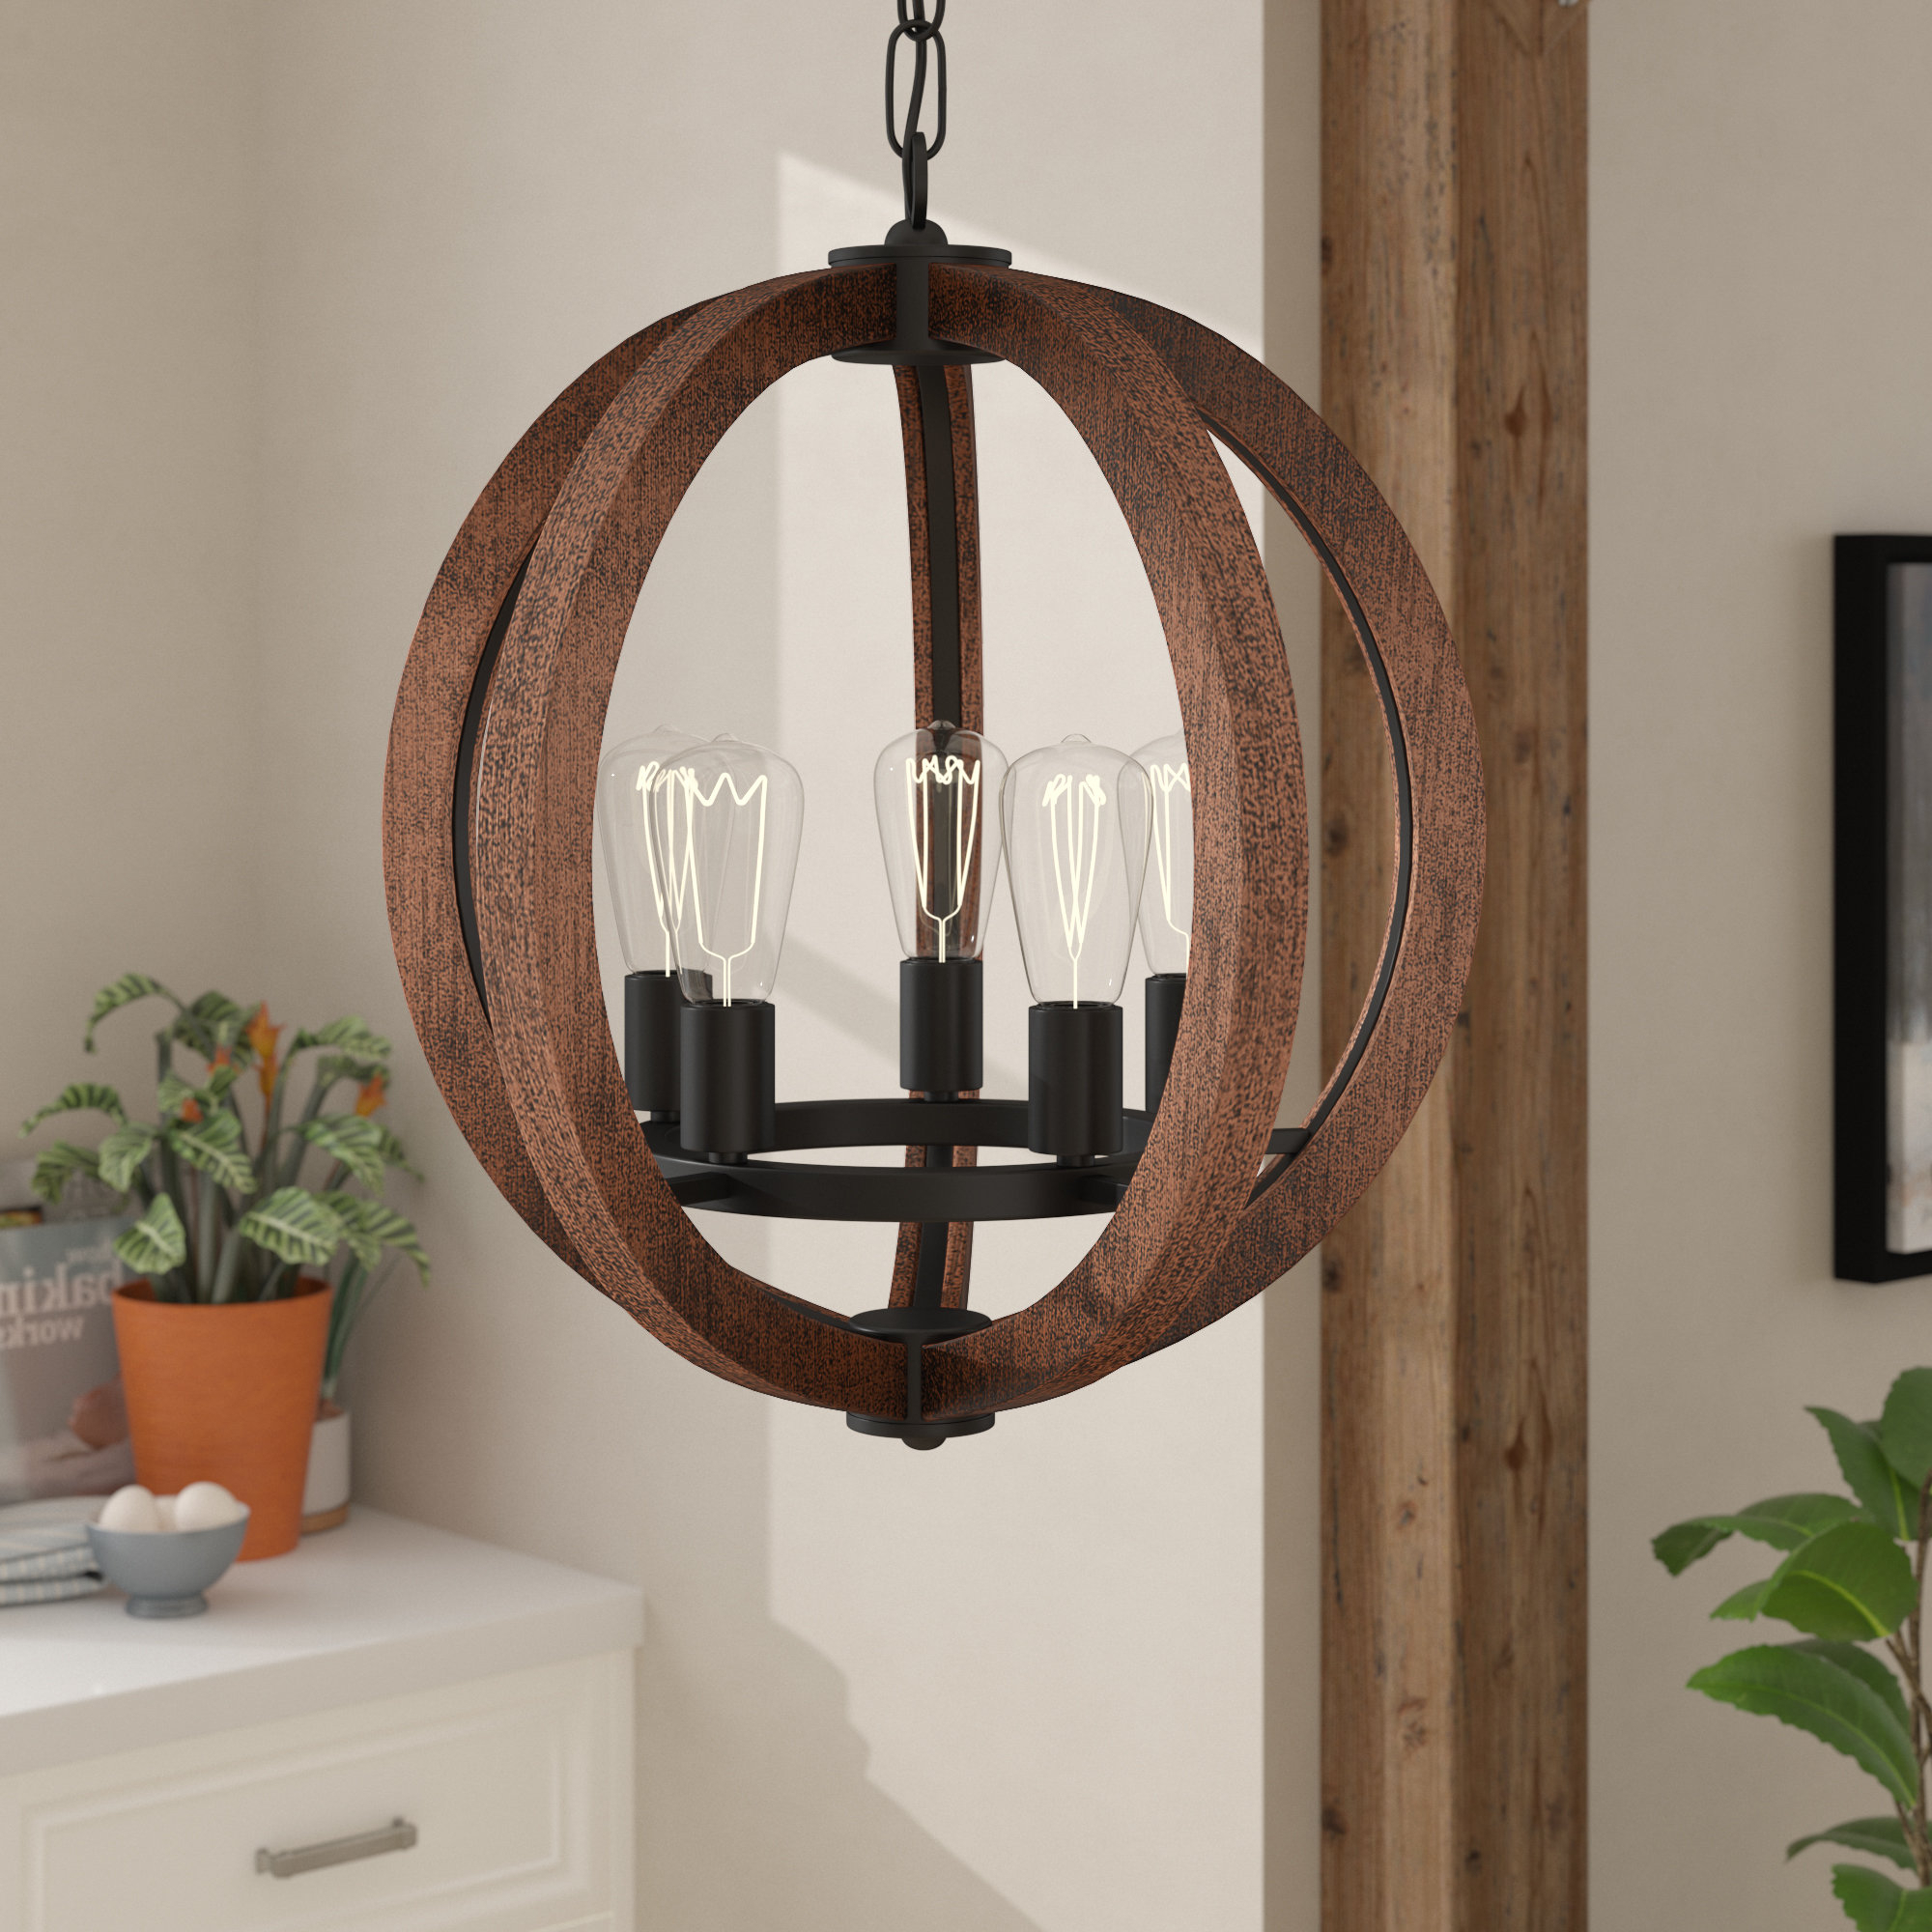 Orly 5 Light Globe Chandelier With Best And Newest Ricciardo 4 Light Globe Chandeliers (View 13 of 25)